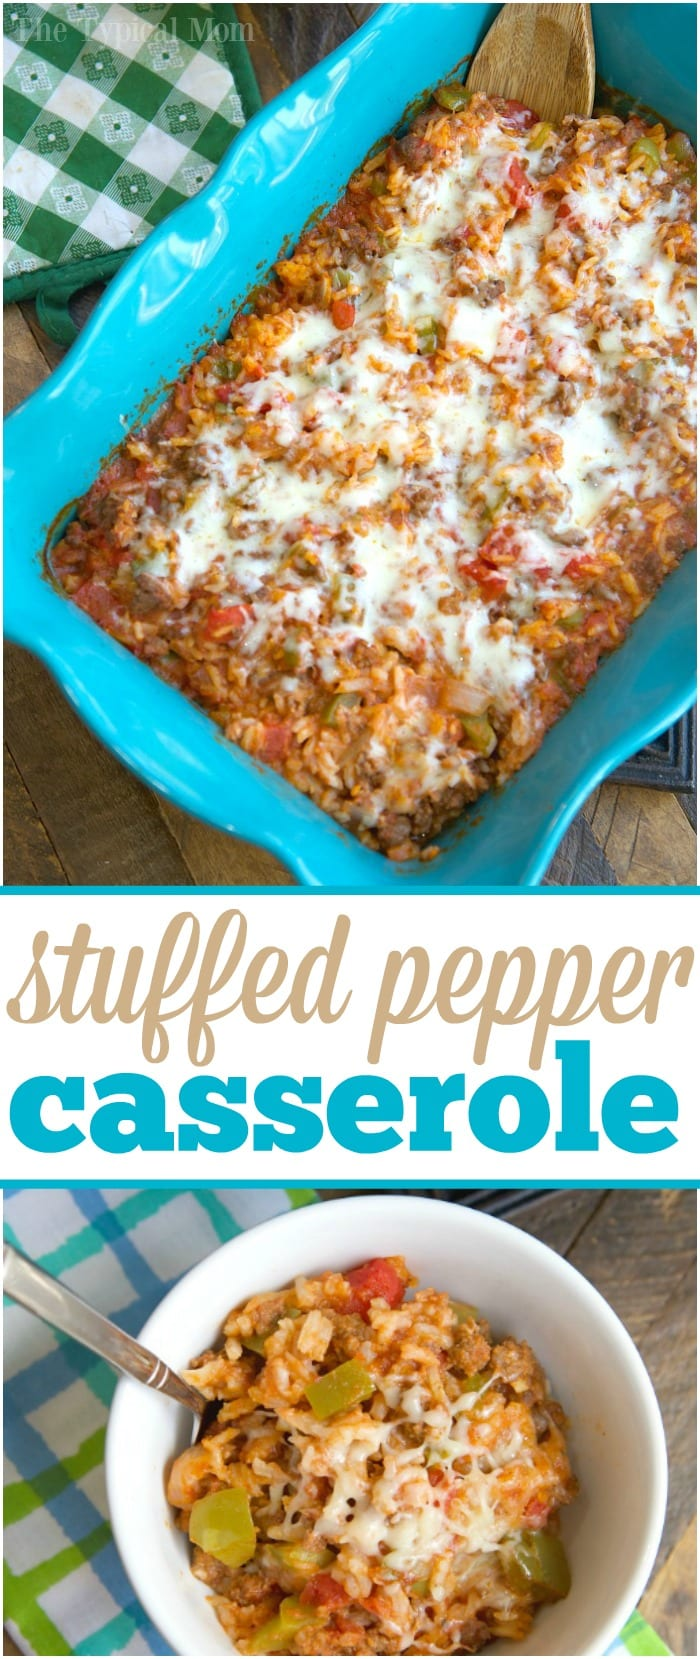 This cheesy stuffed pepper casserole is a family favorite for sure! Like deconstructed stuffed bell peppers it's an easy casserole topped with lots of cheese you can throw together and even my kids love it! Packed with the classic flavors you remember it is easier to make and great the next day too. #stuffed #pepper #peppers #casserole #easy #dinner #groundbeef #unstuffed #rice #green